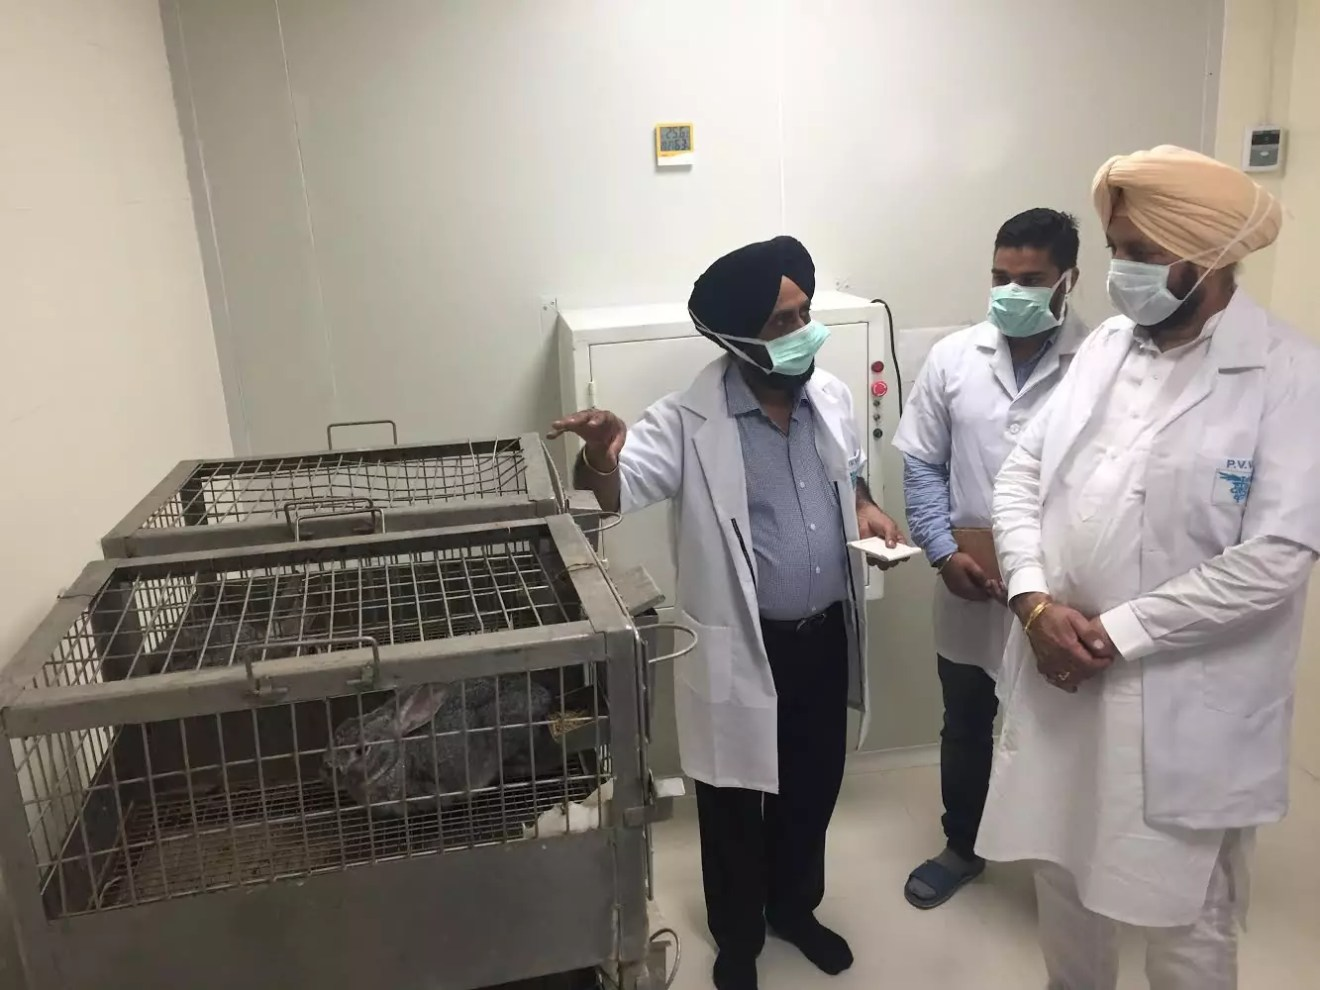 PUNJAB VETERINARY VACCINE INSTITUTE DEVELOPS VACCINE TO PROTECT PIGS FROM SWINE FEVER